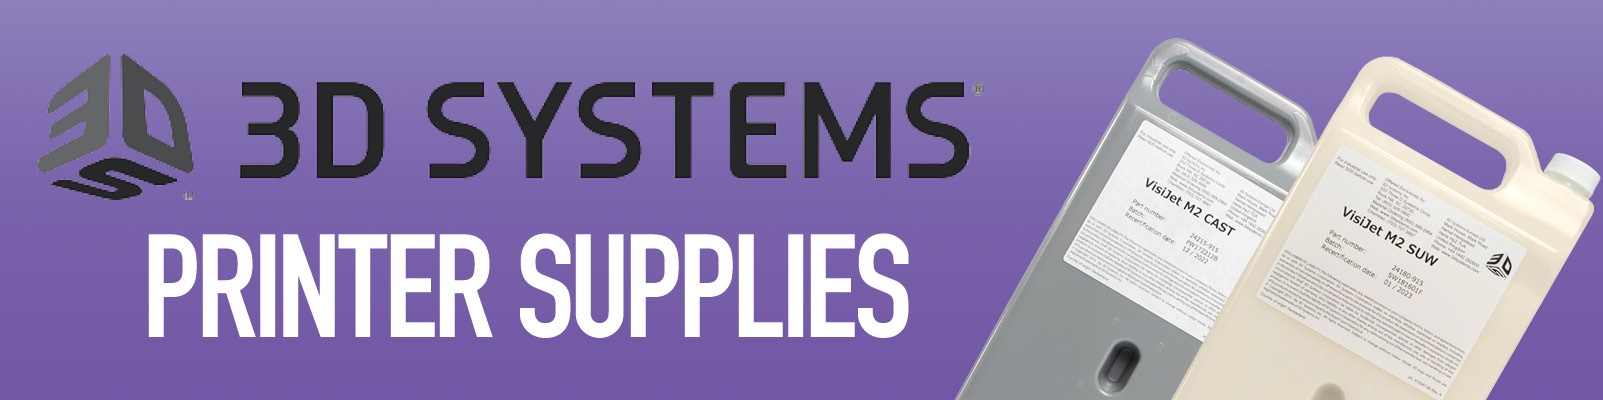 3D Systems Printer Supplies